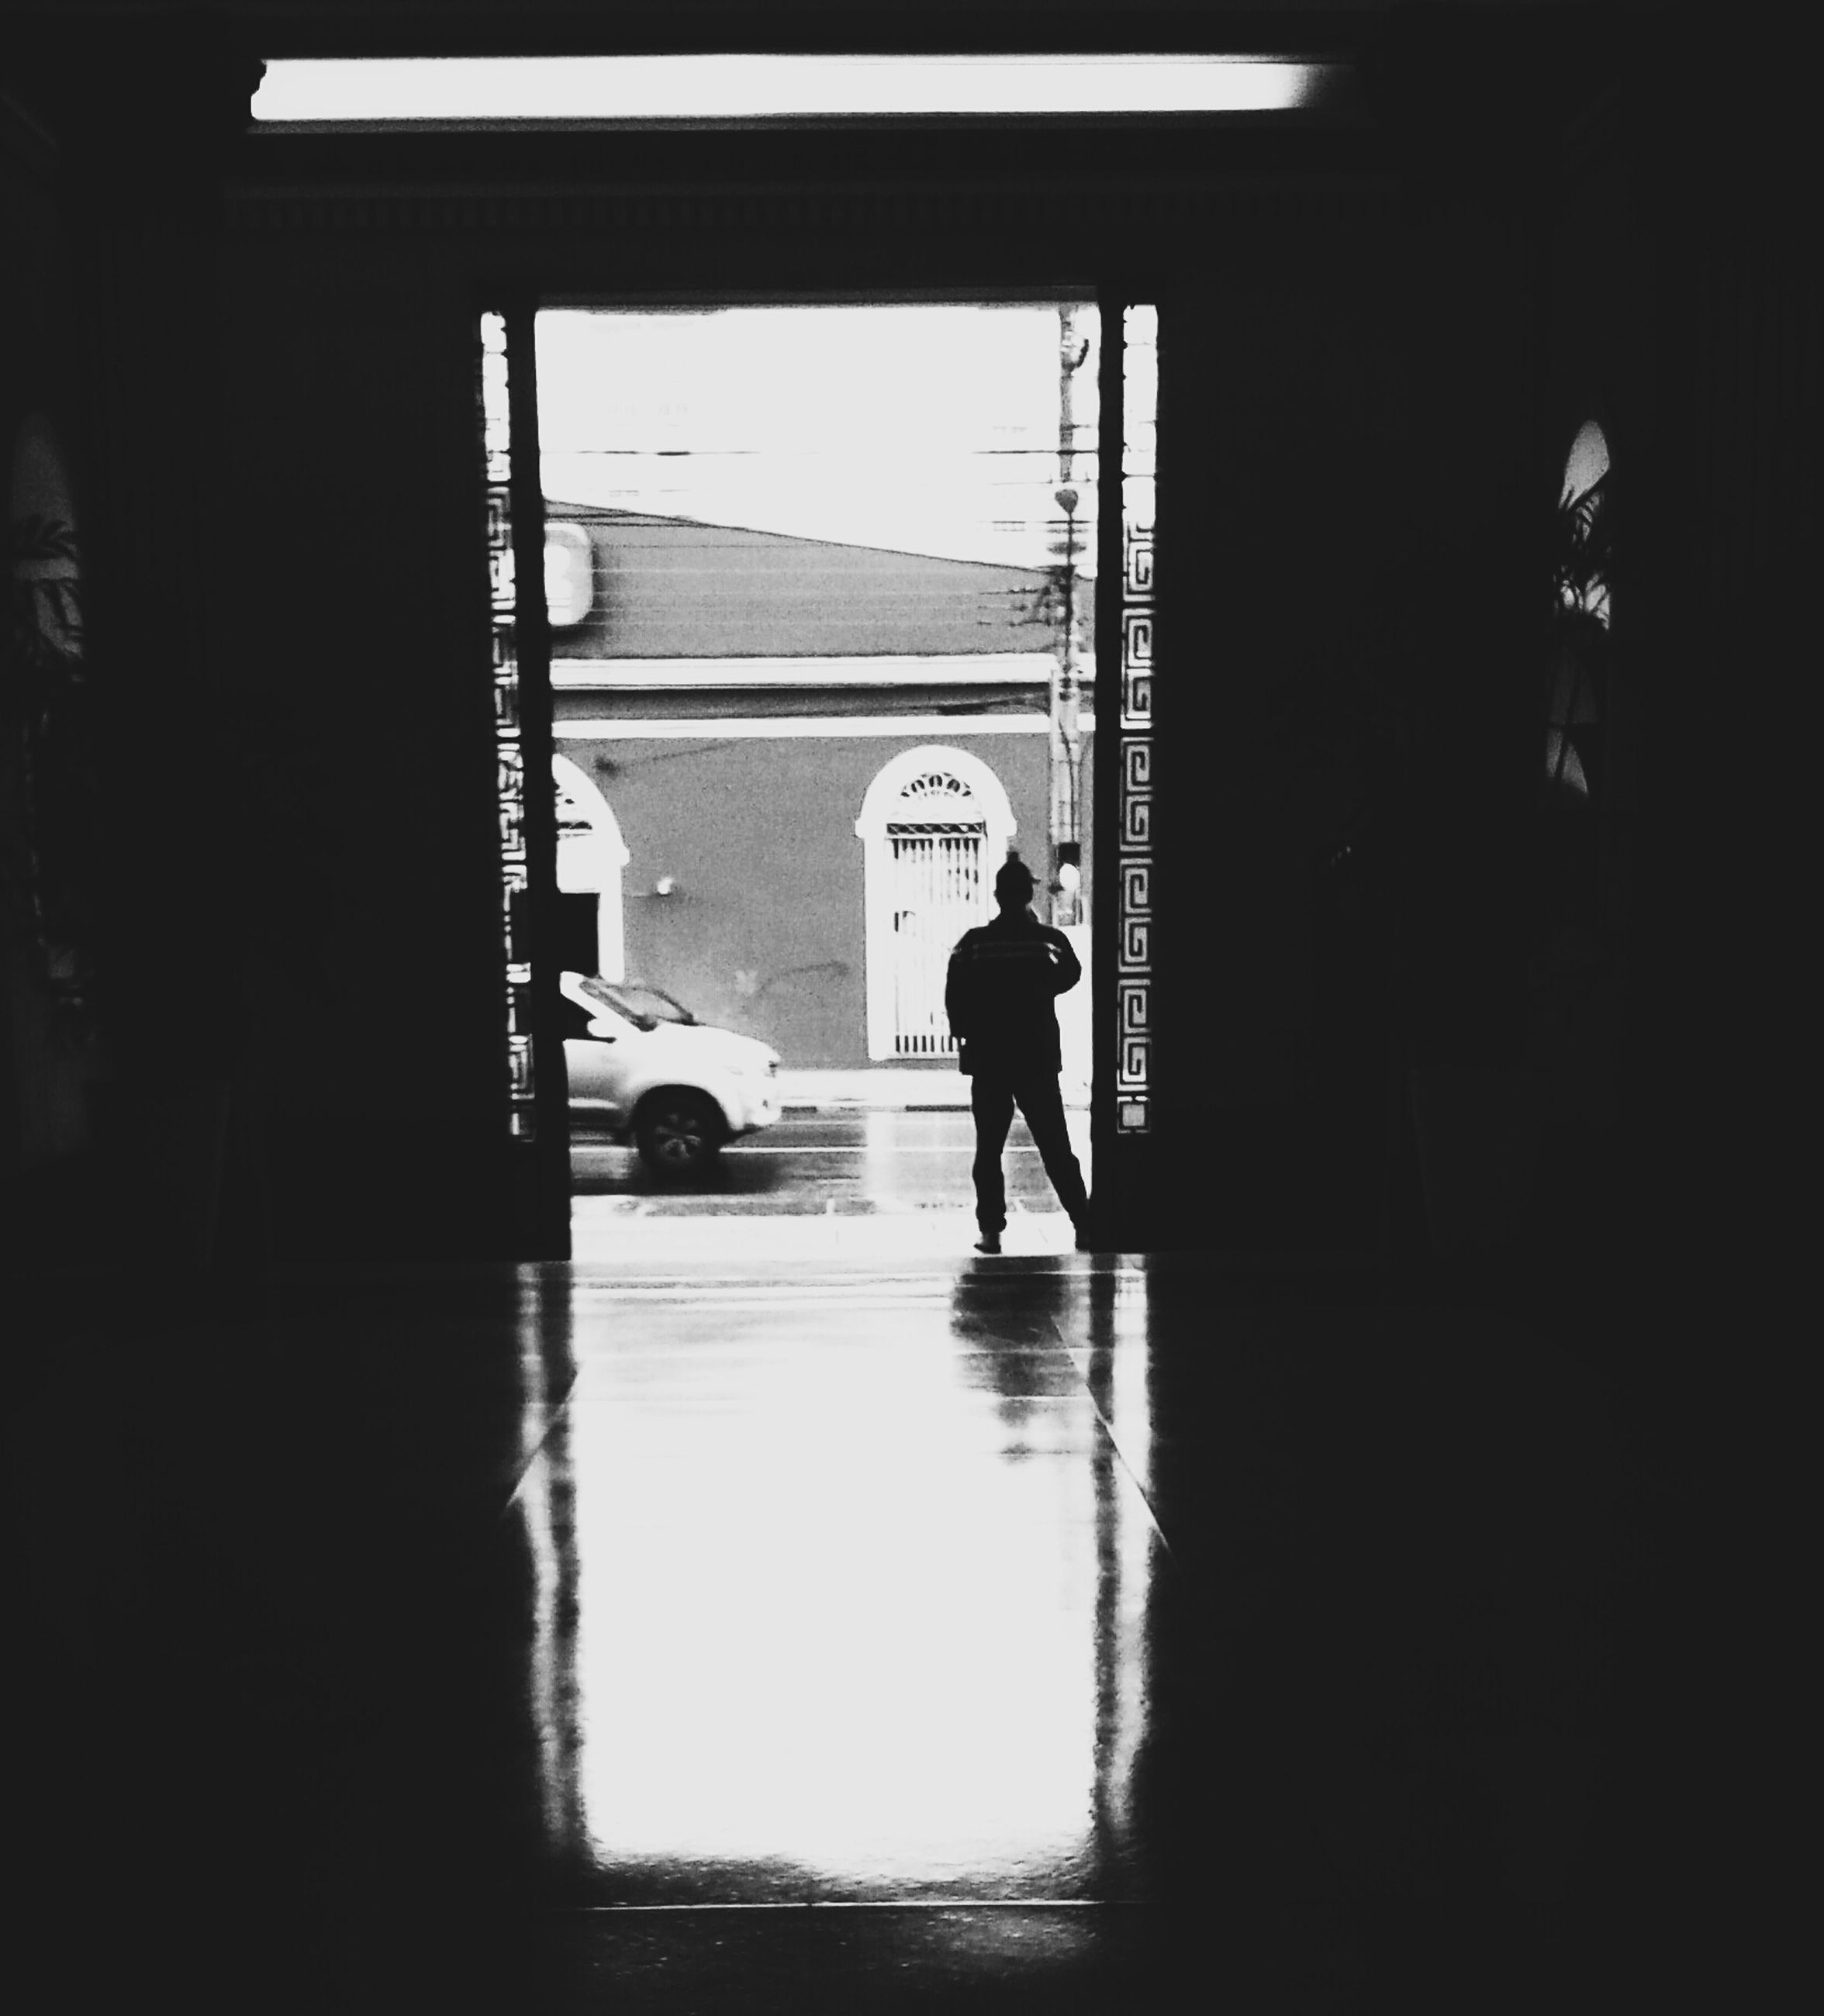 indoors, full length, architecture, silhouette, men, walking, built structure, lifestyles, window, rear view, leisure activity, person, standing, reflection, city life, day, shadow, sunlight